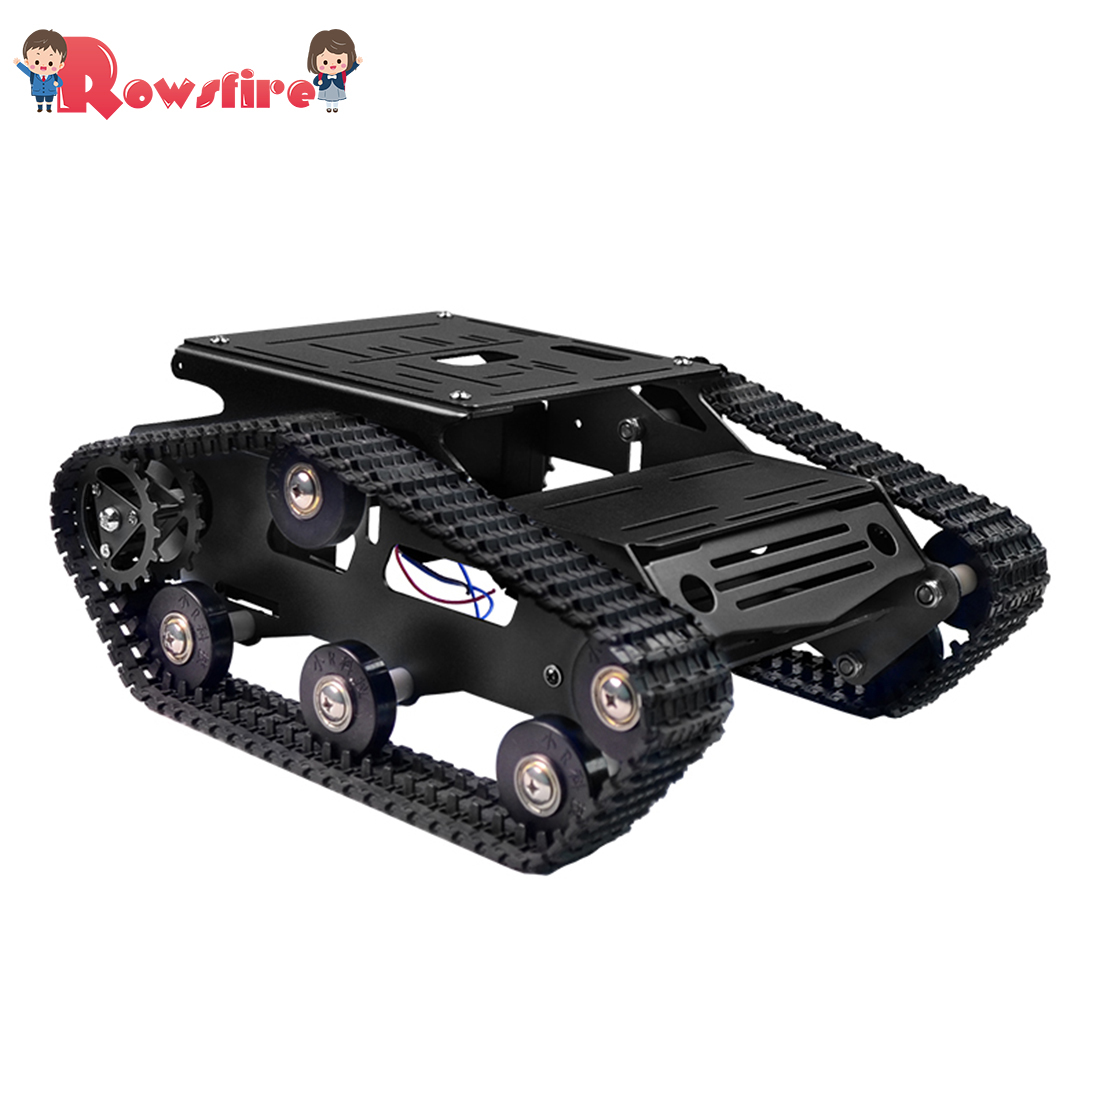 New Hot DIY Smart Robot Tank Crawler Chassis Car Frame Kit - Black/Blue/Red/Green/Golden